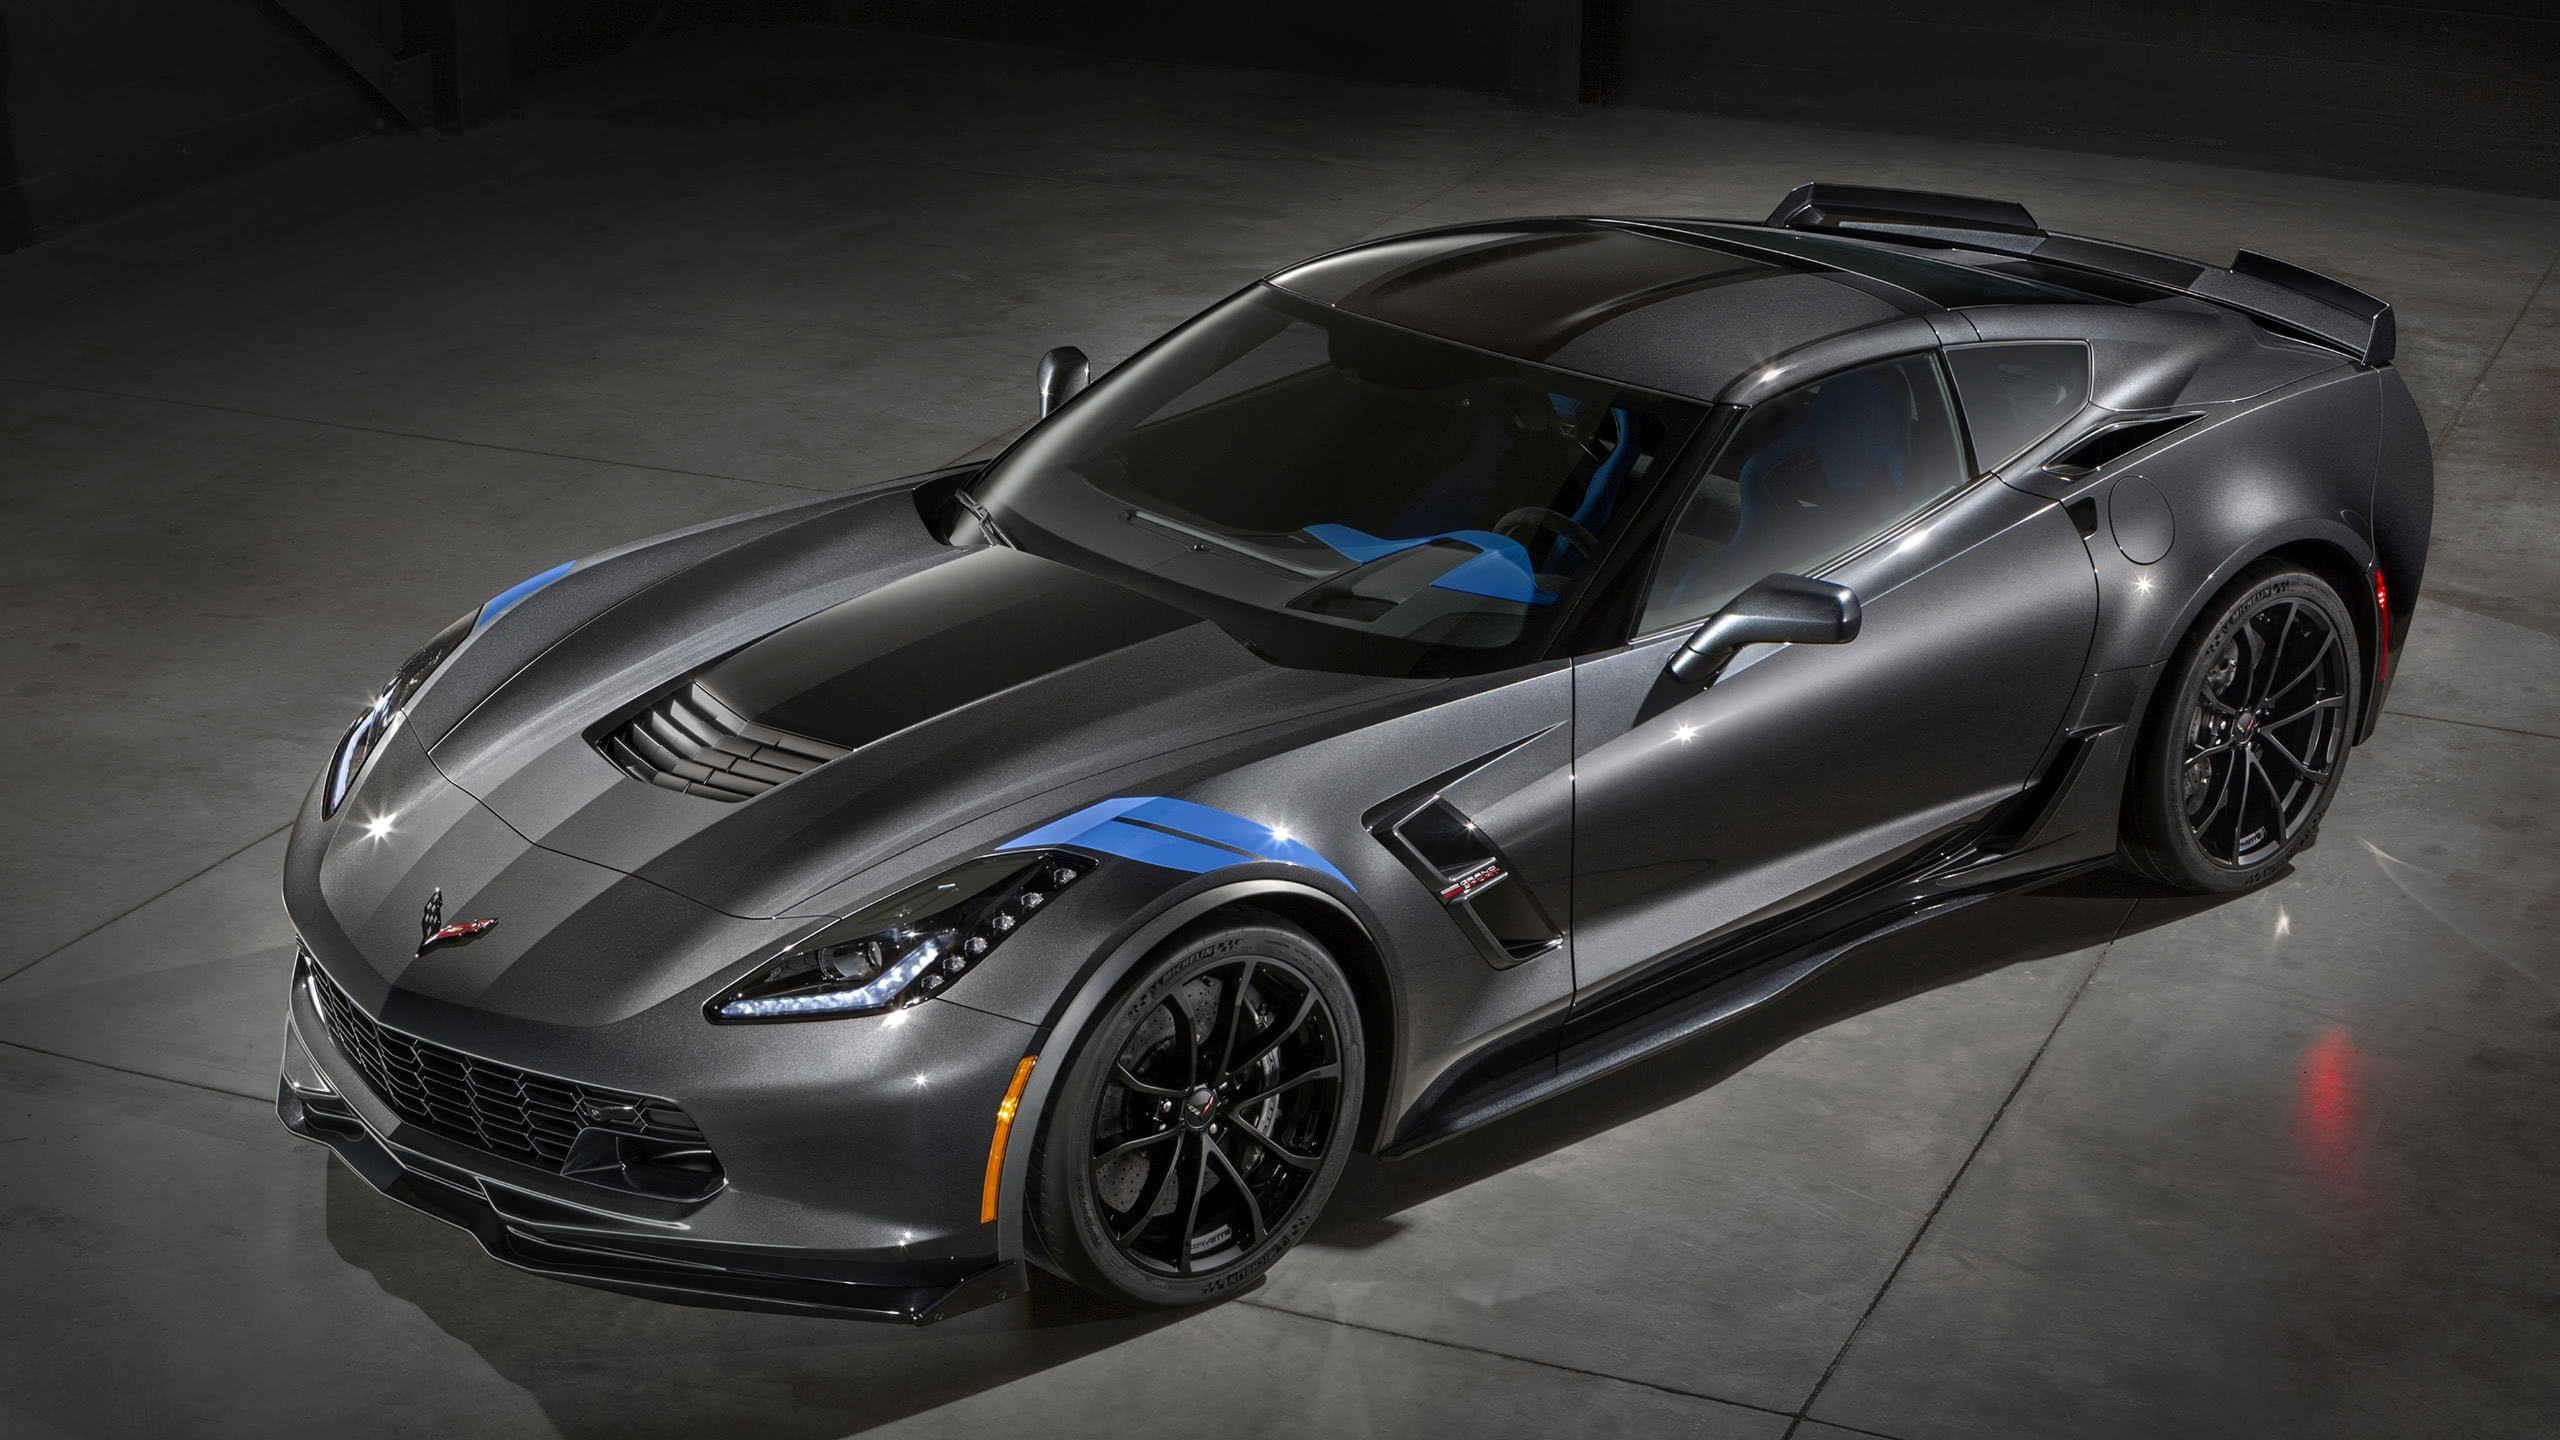 chevrolet corvette grand sport wqhd 1440pvwallpaper